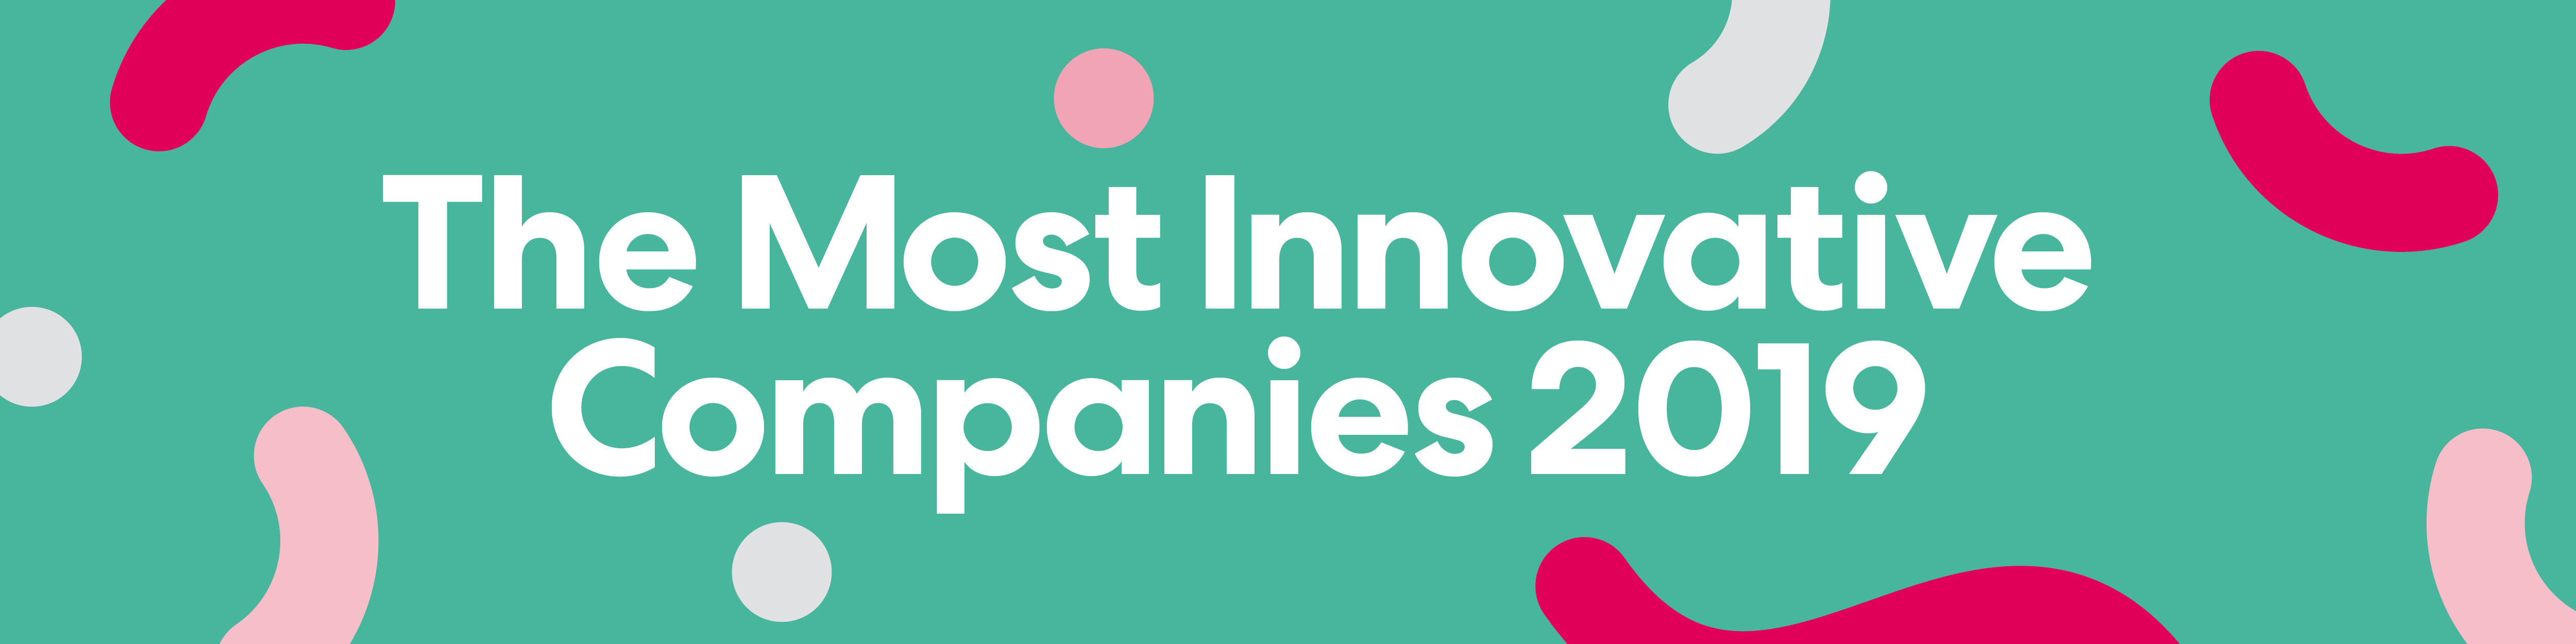 The World's Most Innovative Companies 2019: Advertising Honorees